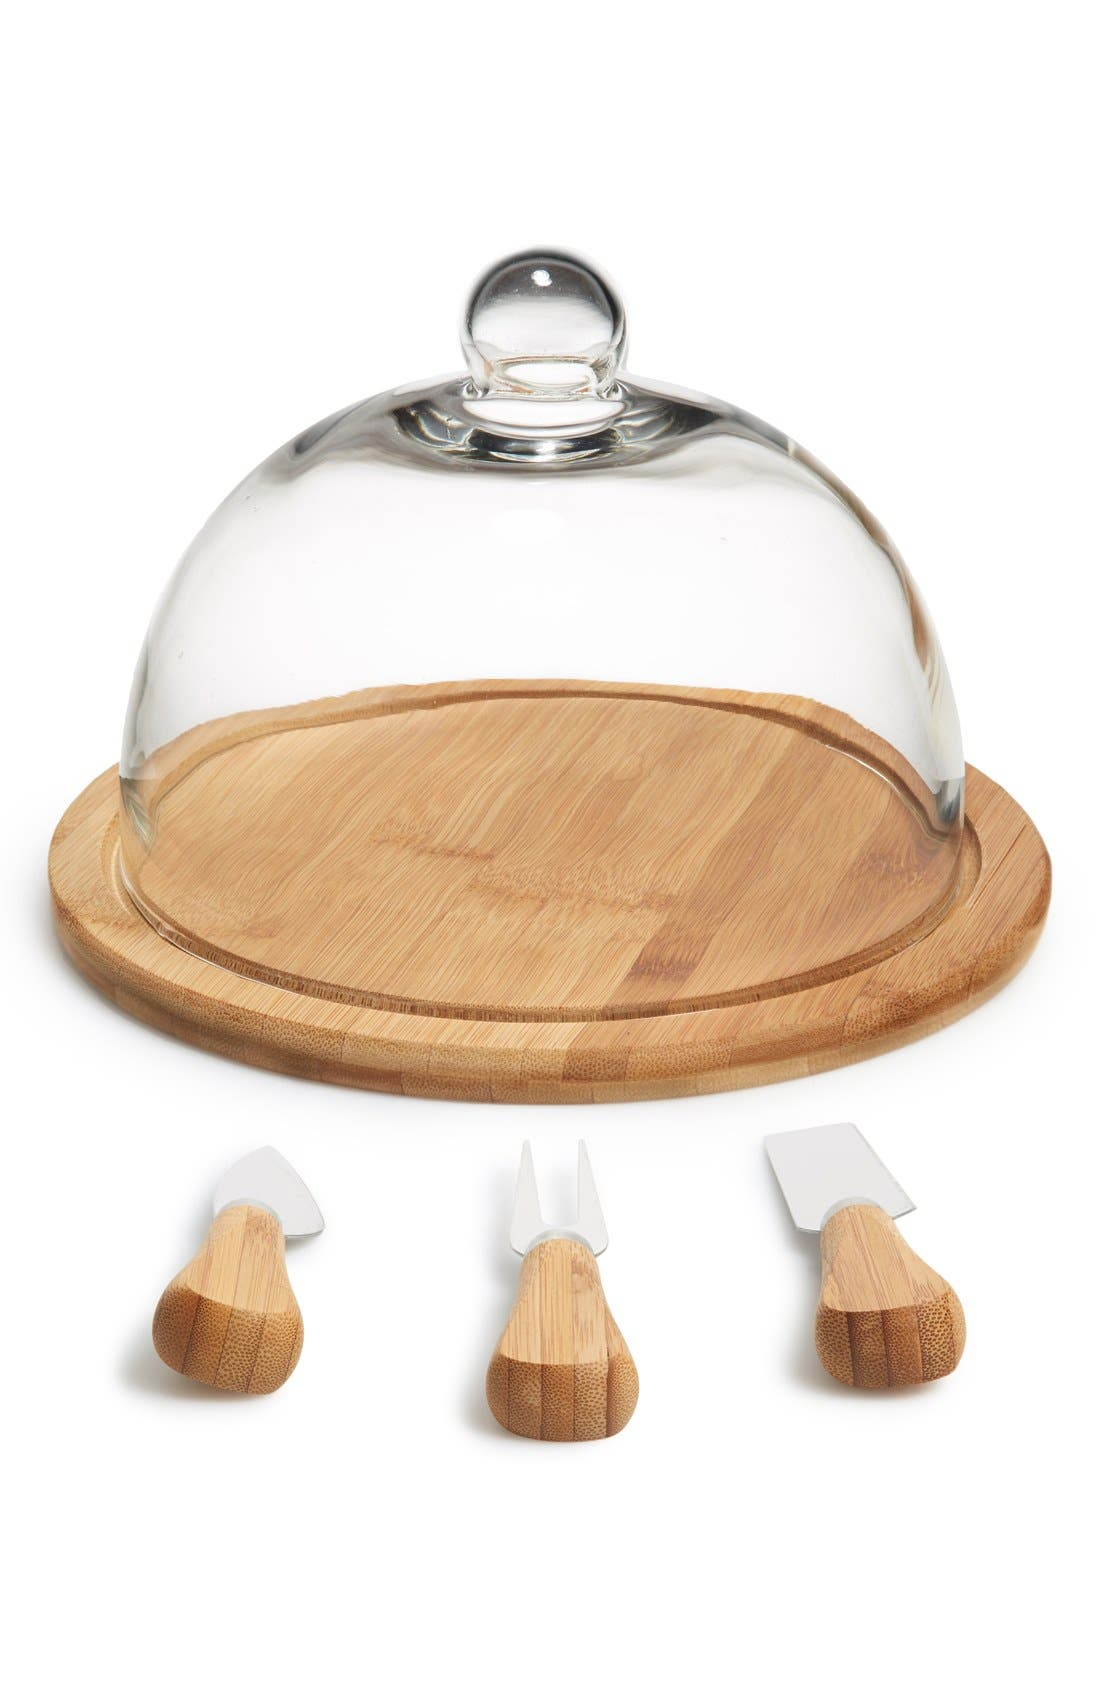 Alternate Image 1 Selected - Core Home Glass Dome Organic Bamboo Cheese Set